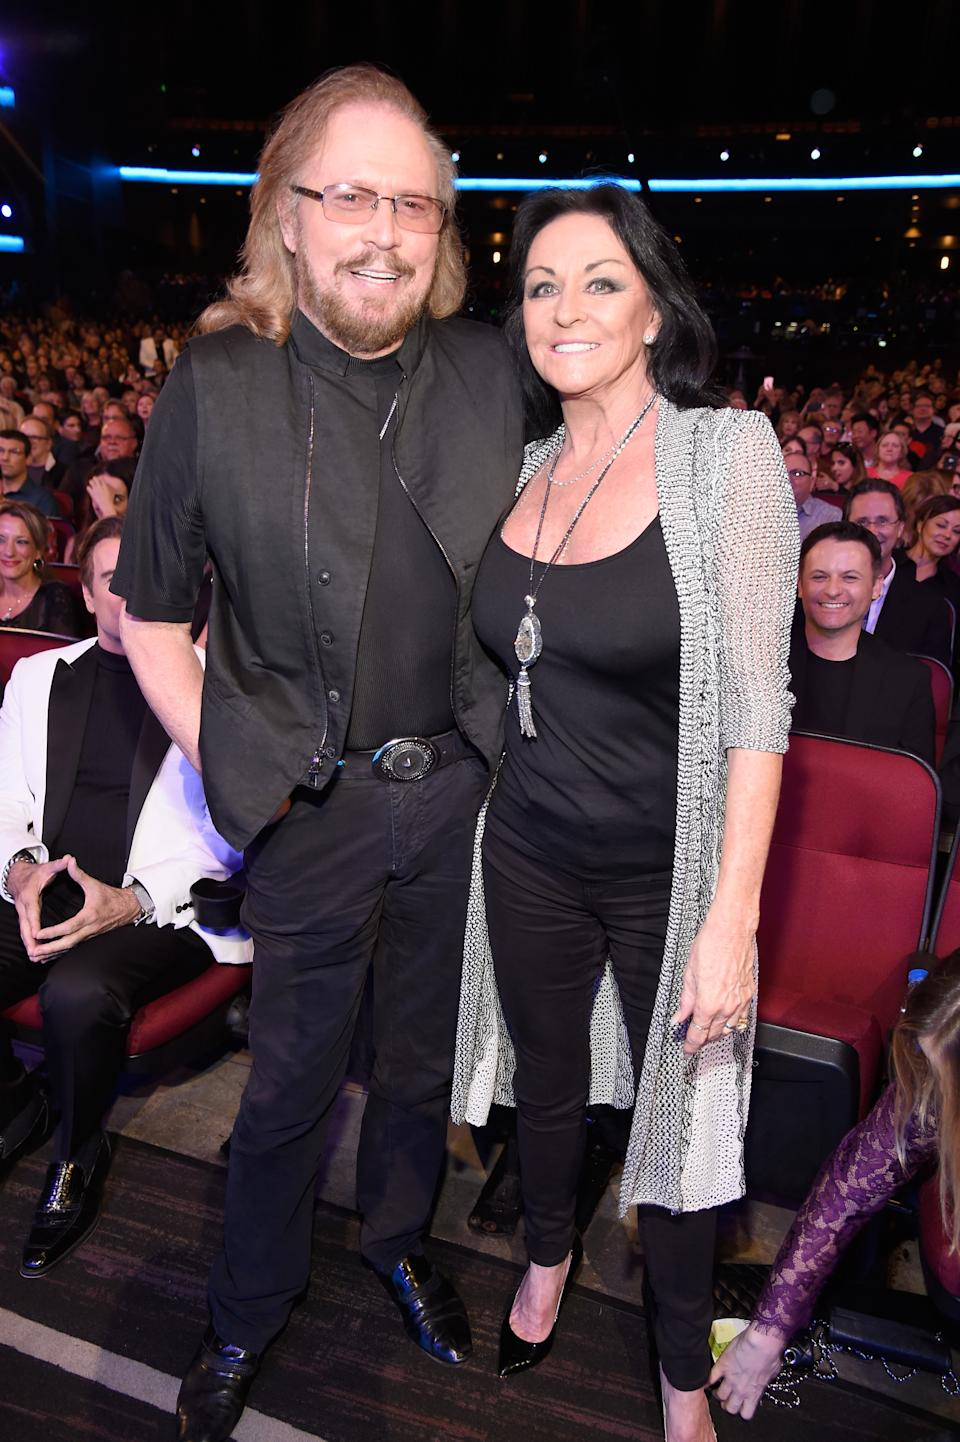 """LOS ANGELES, CA - FEBRUARY 14: Singer Barry Gibb (L) and Linda Gray attend """"Stayin' Alive: A GRAMMY Salute To The Music Of The Bee Gees"""" on February 14, 2017 in Los Angeles, California. (Photo by Kevin Mazur/WireImage)"""